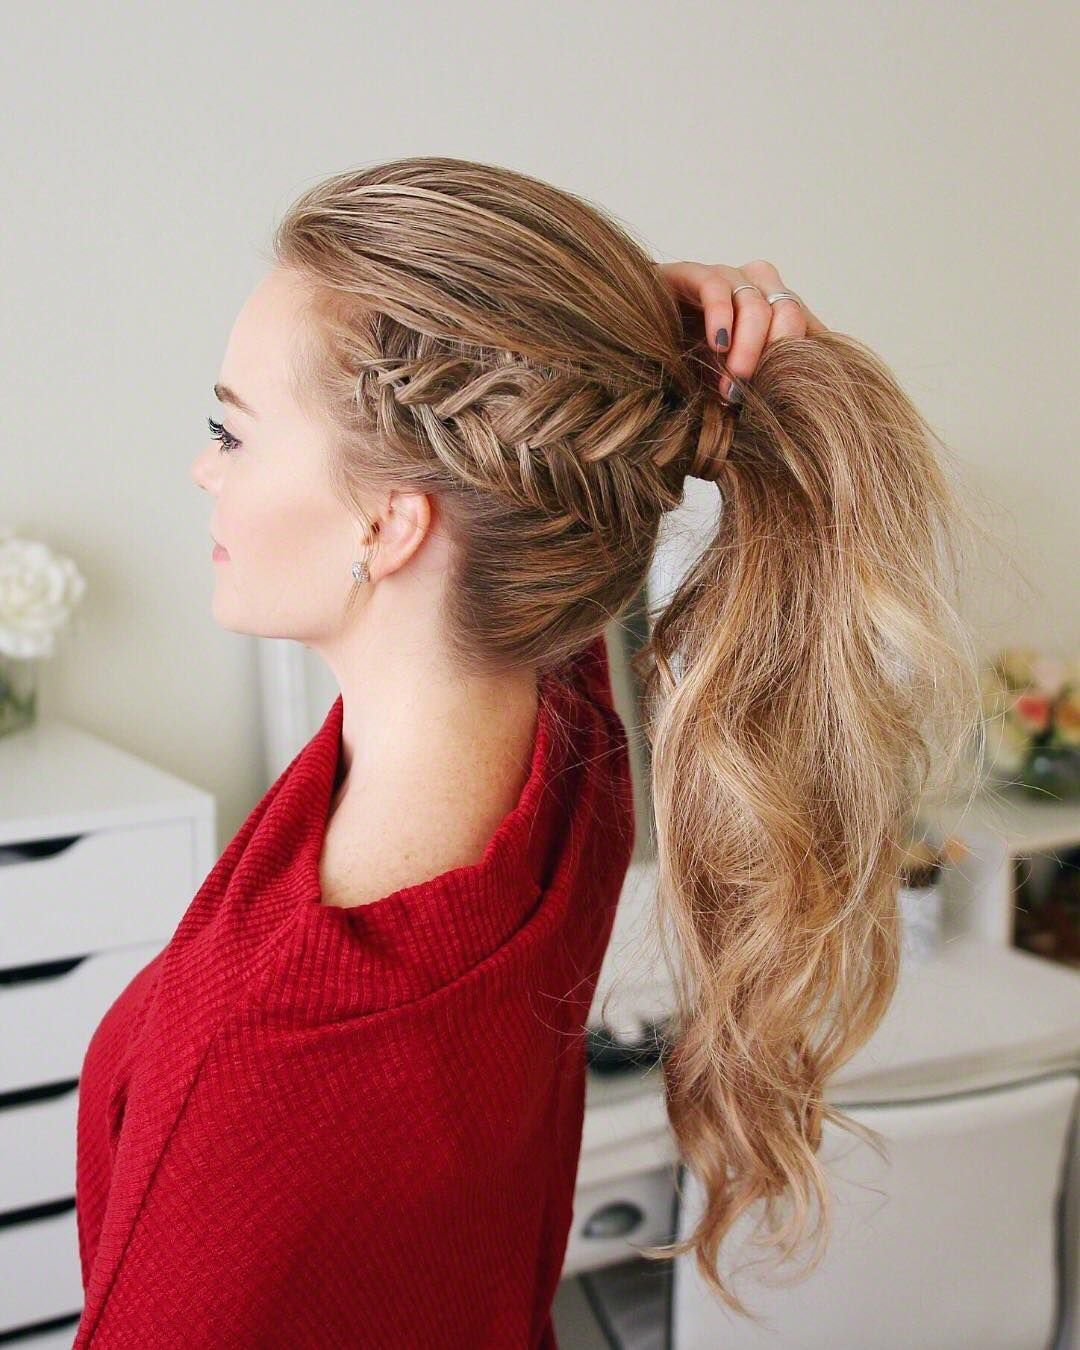 Best Super Cute and Cool Ponytail Hairstyles, Long Hair Styles